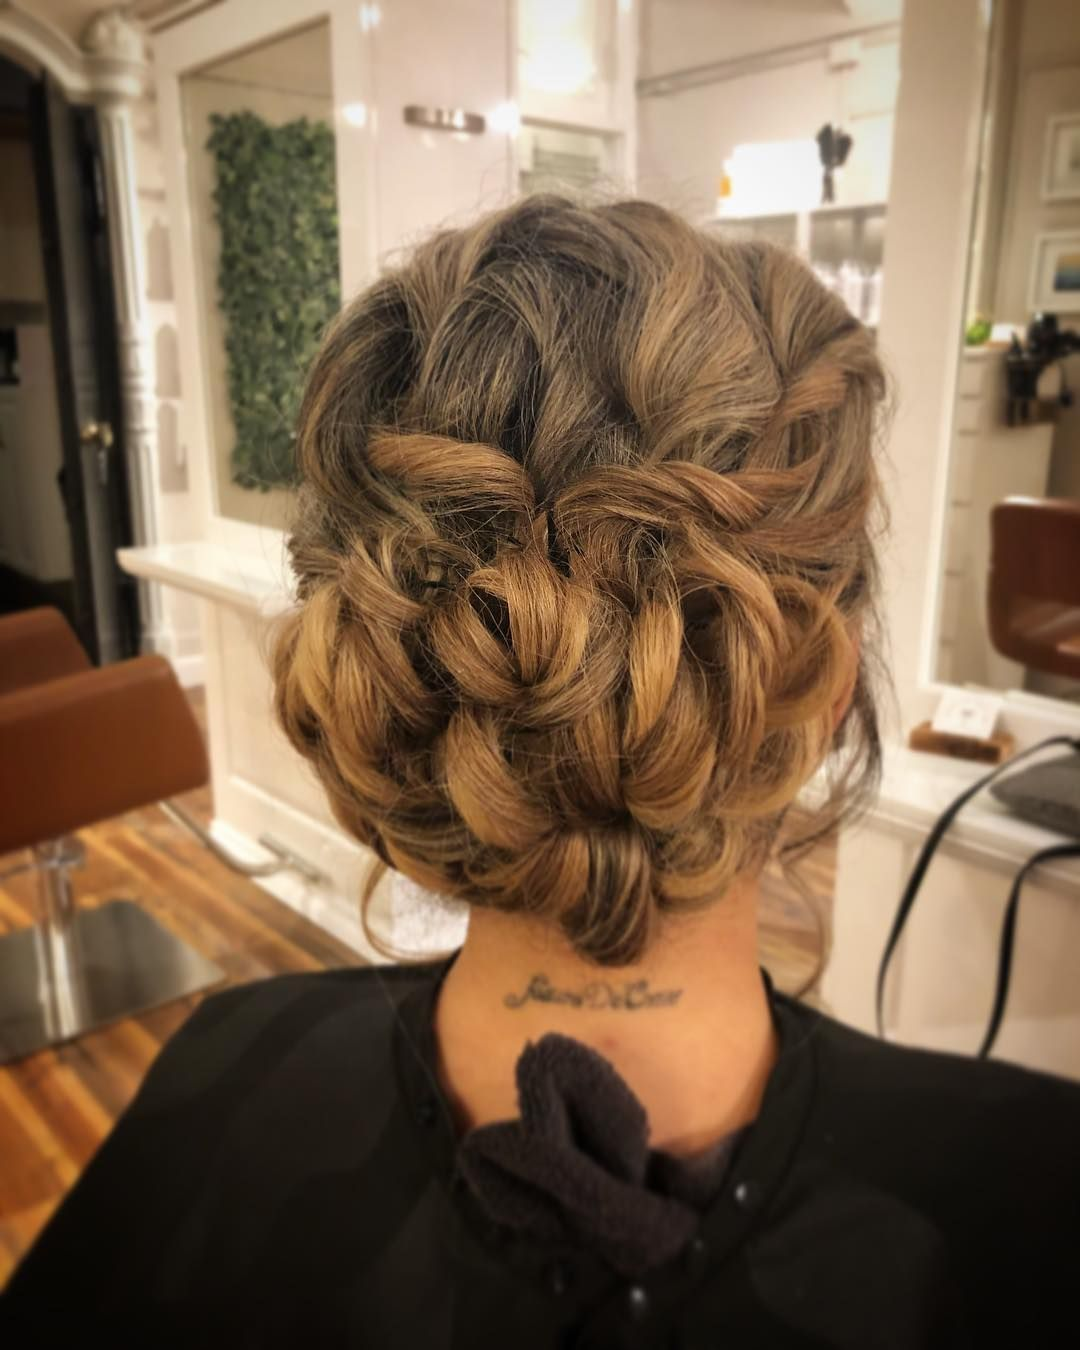 Updo hairstyles for prom wedding or etc updo hairstyles